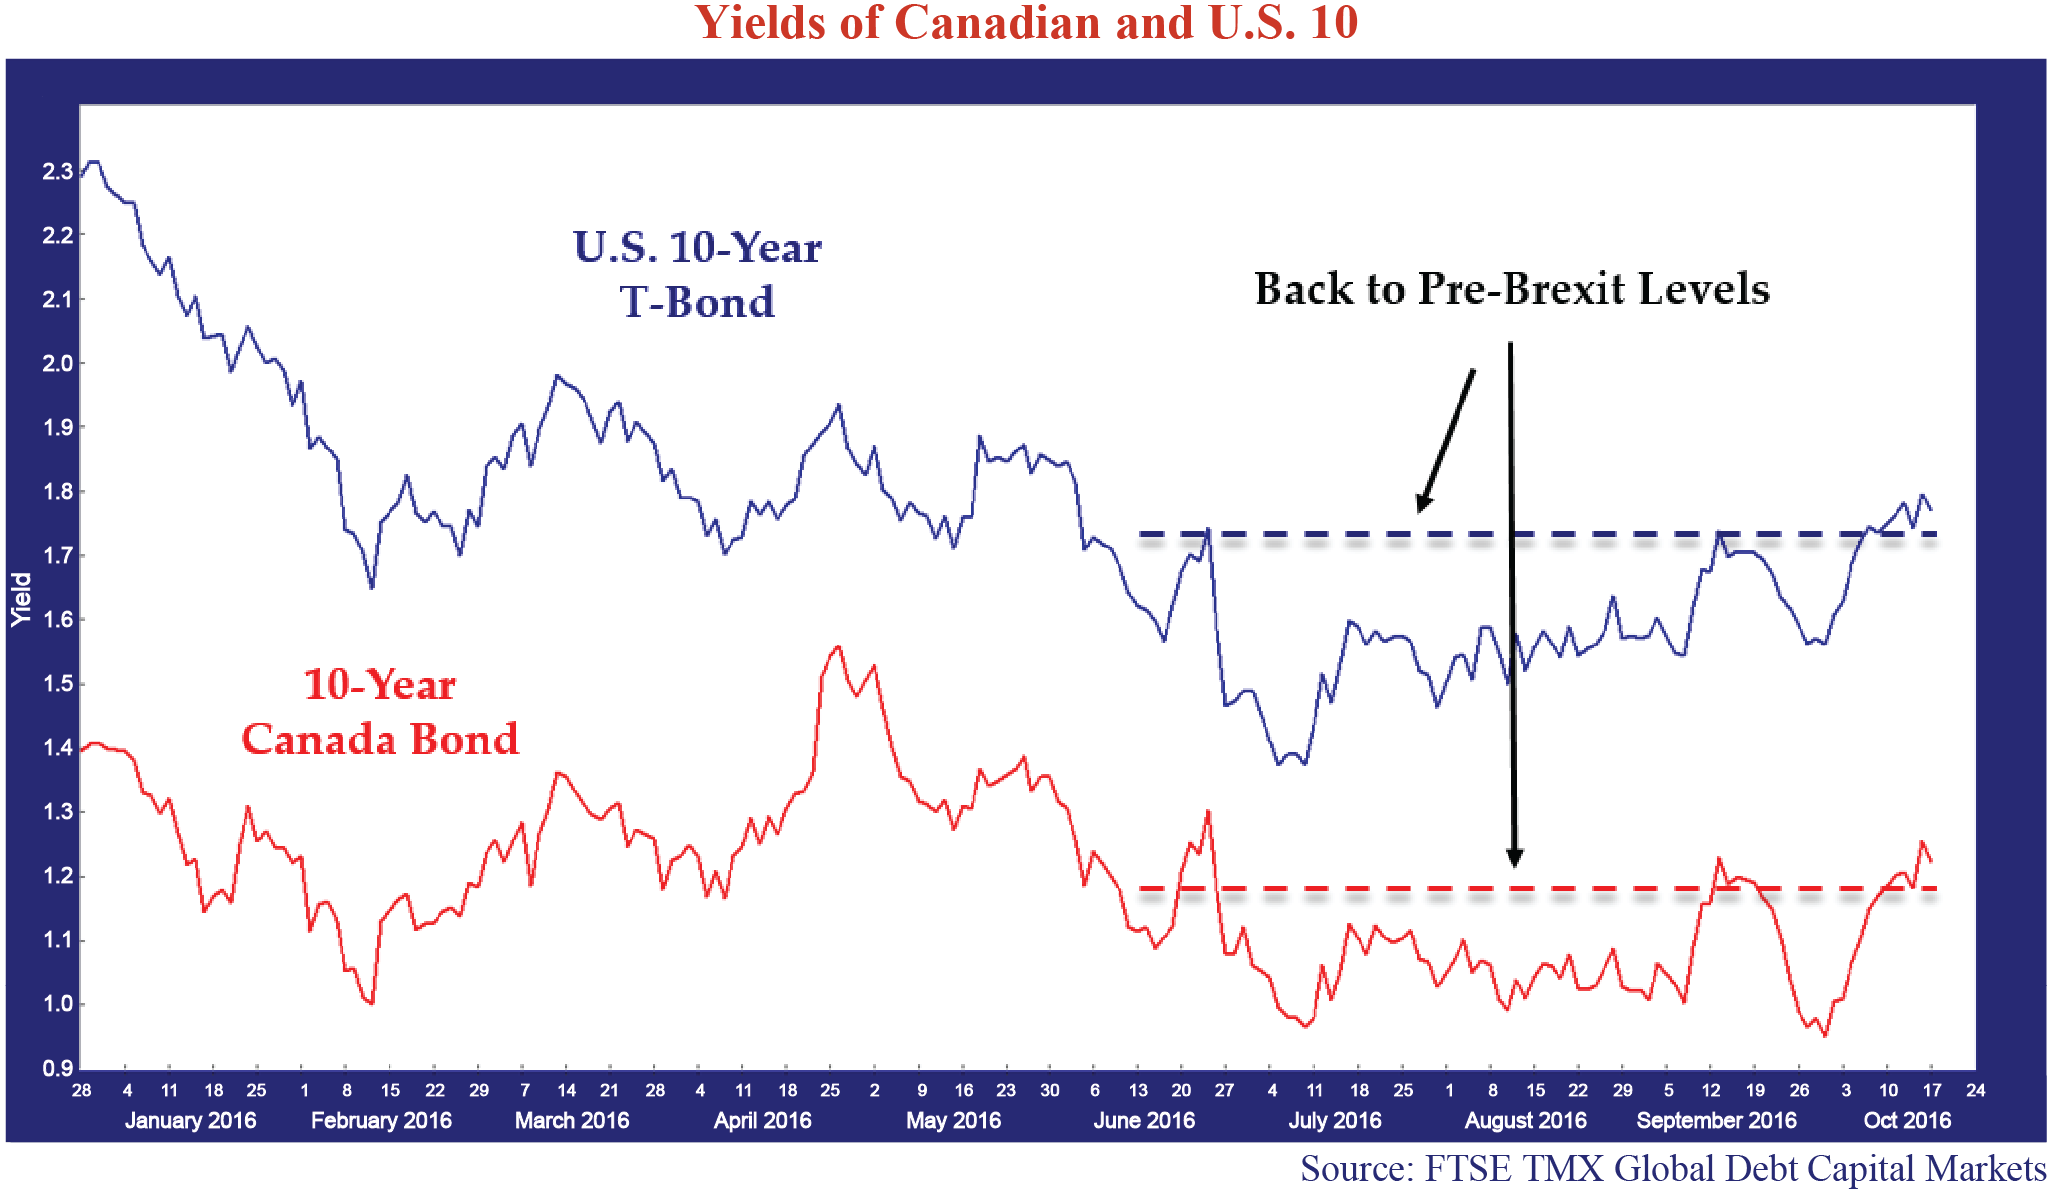 yields-of-canadian-and-U.S